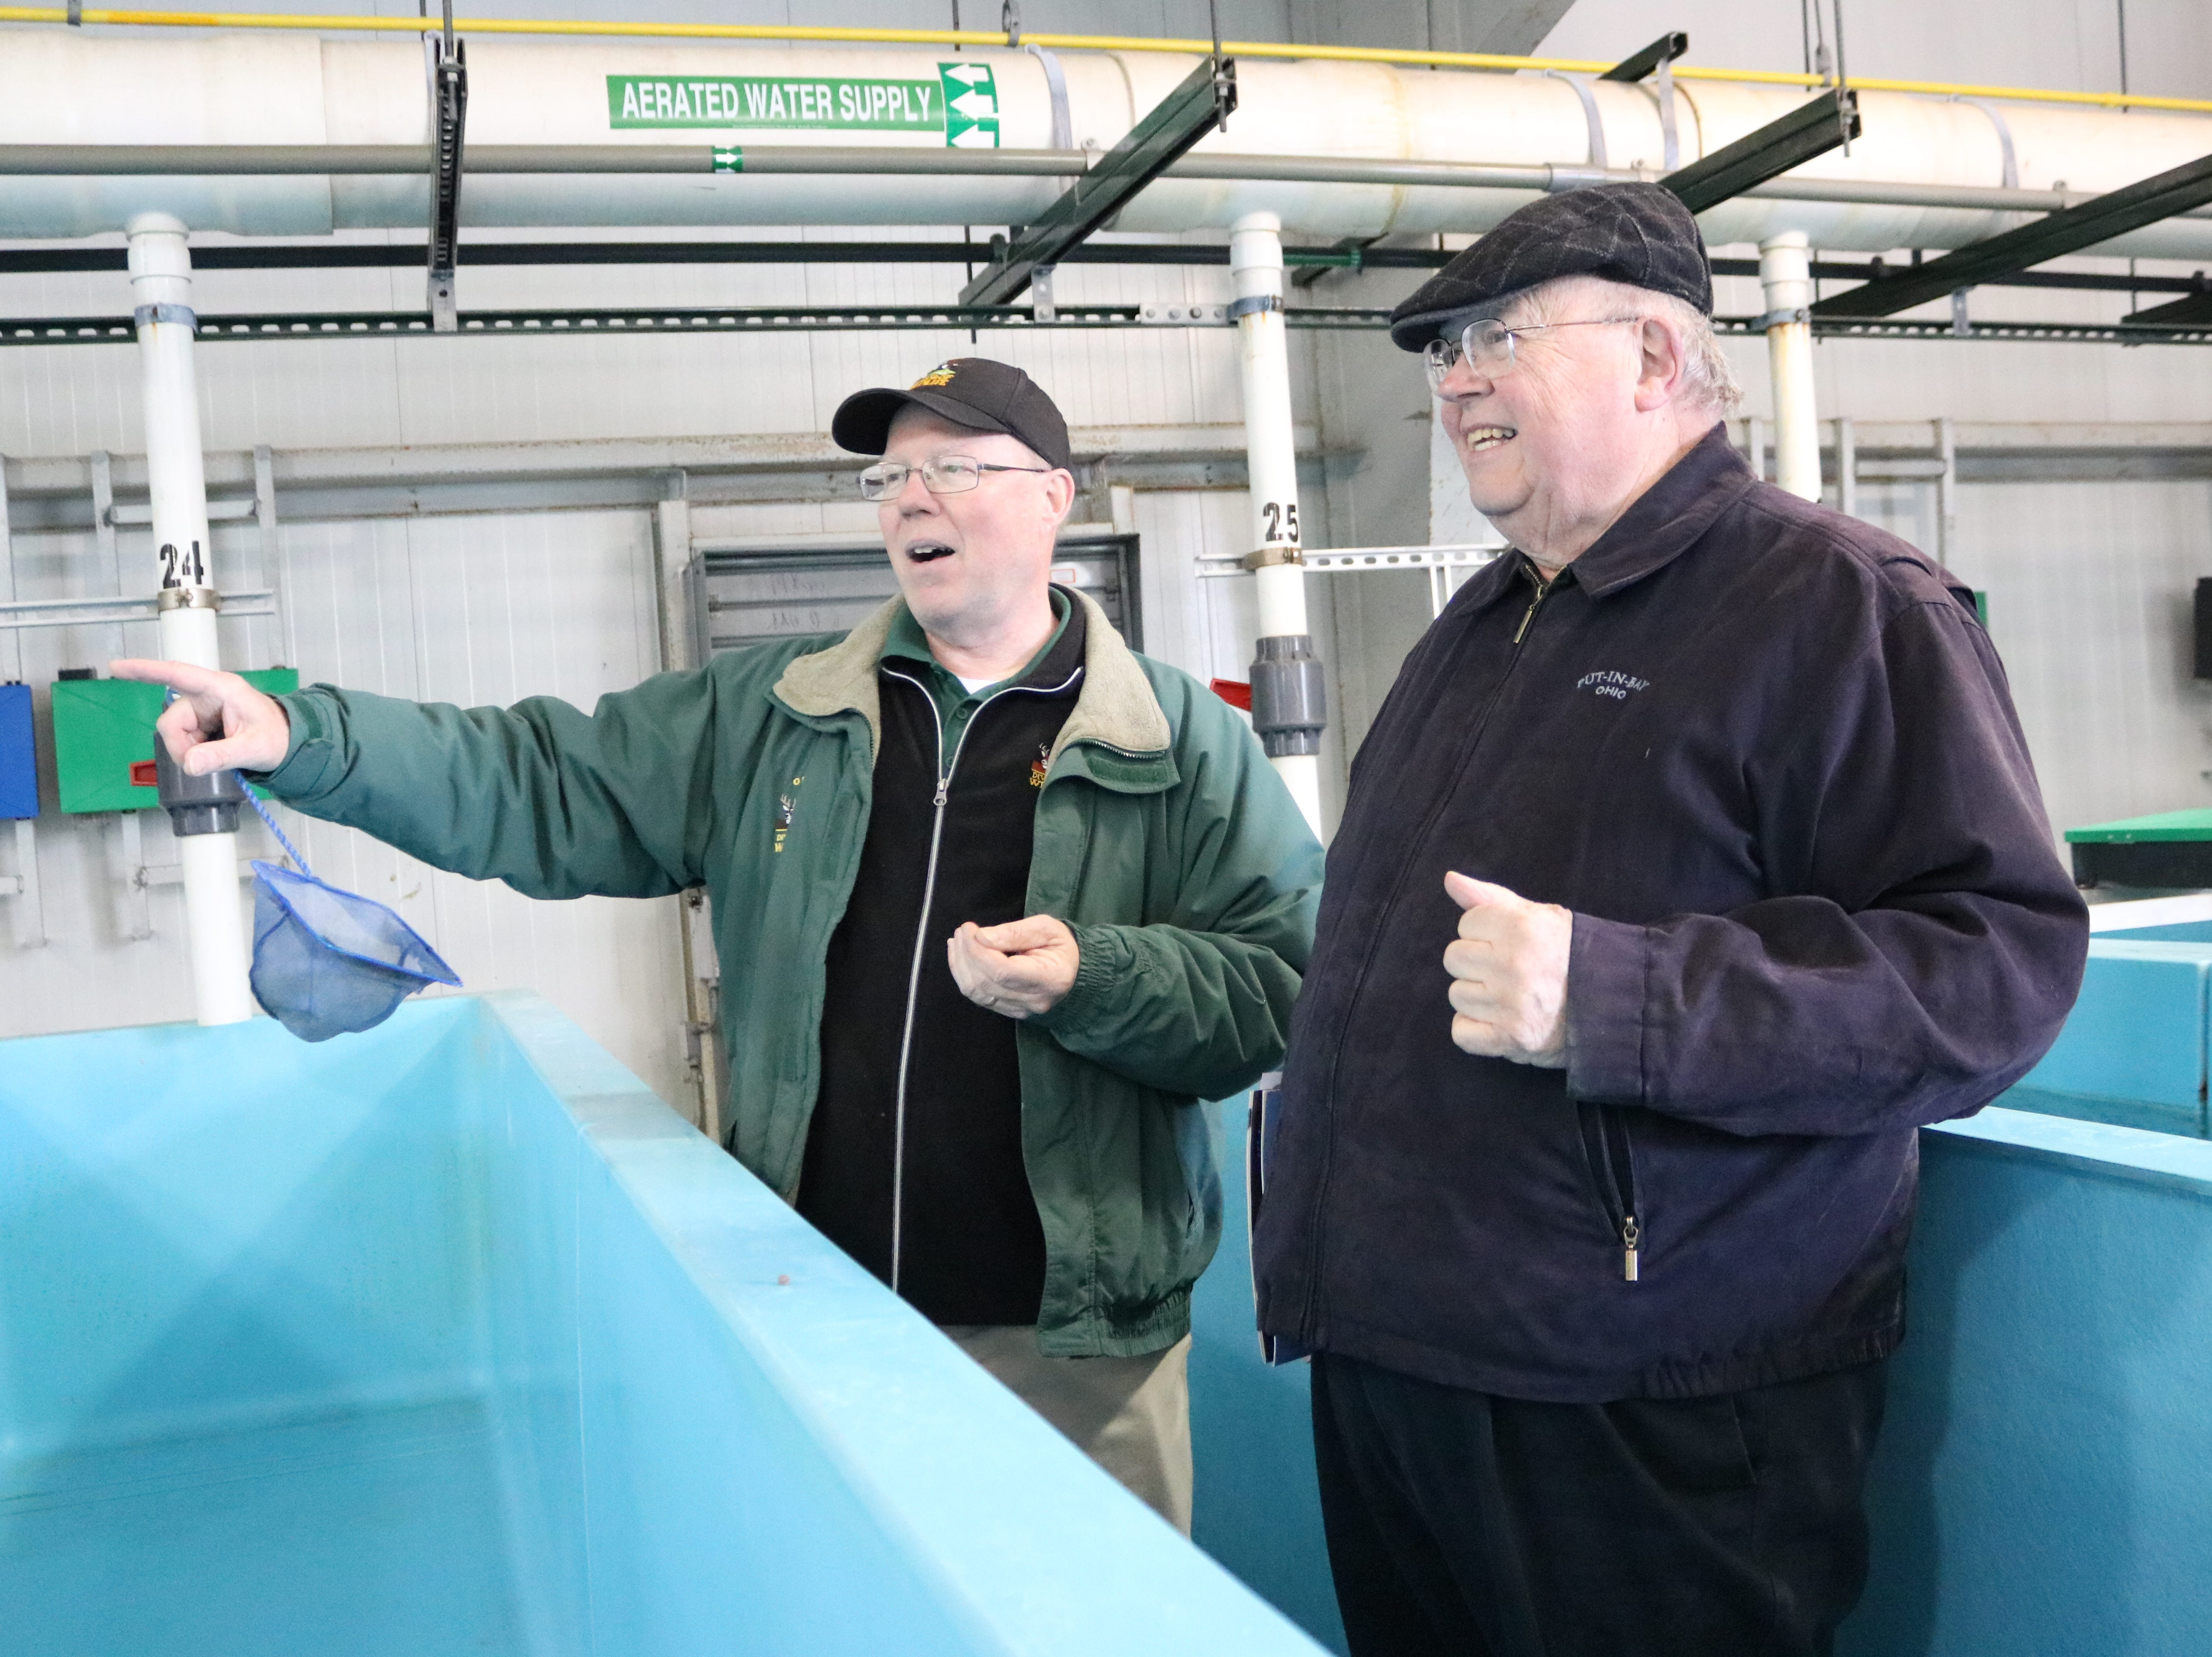 Kevin Kayle, administrator of the state fish hatchery program, speaks with the Rev. James Peiffer during the open house on Saturday.